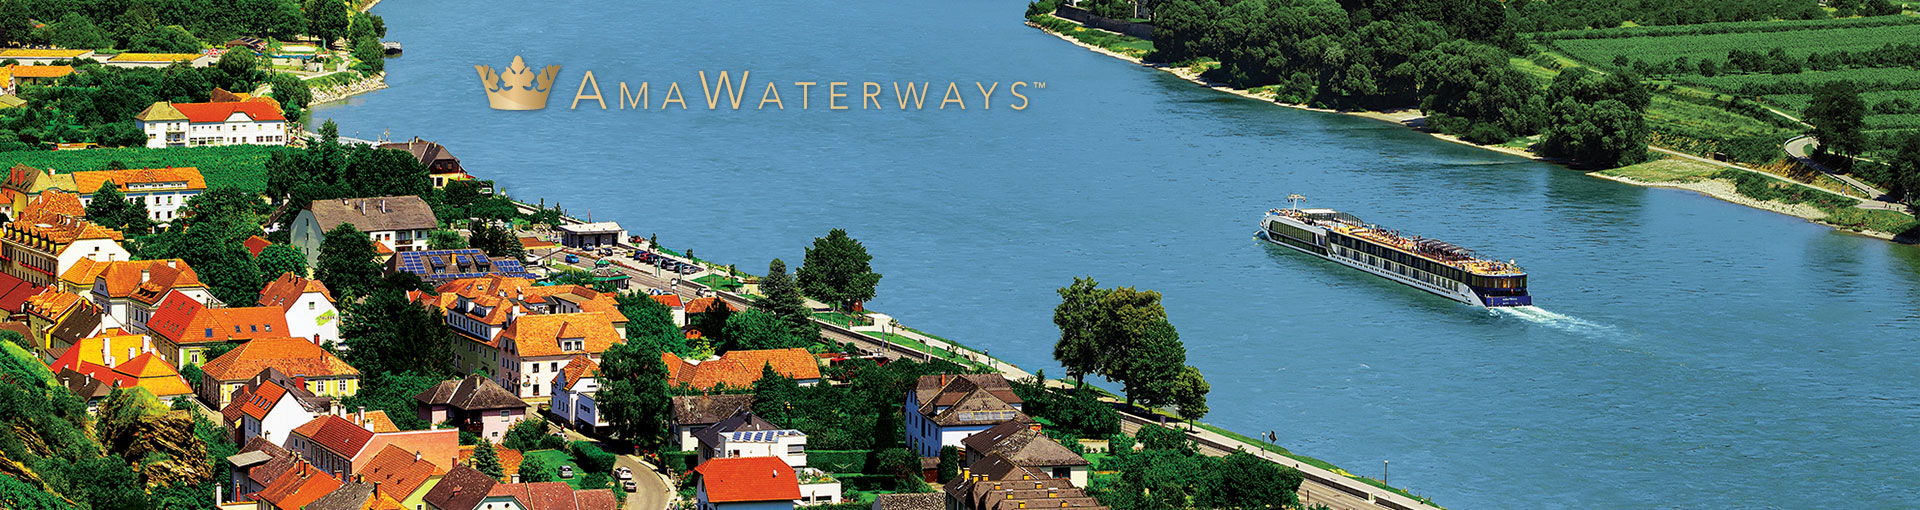 Already Booked with AmaWaterways River Cruises